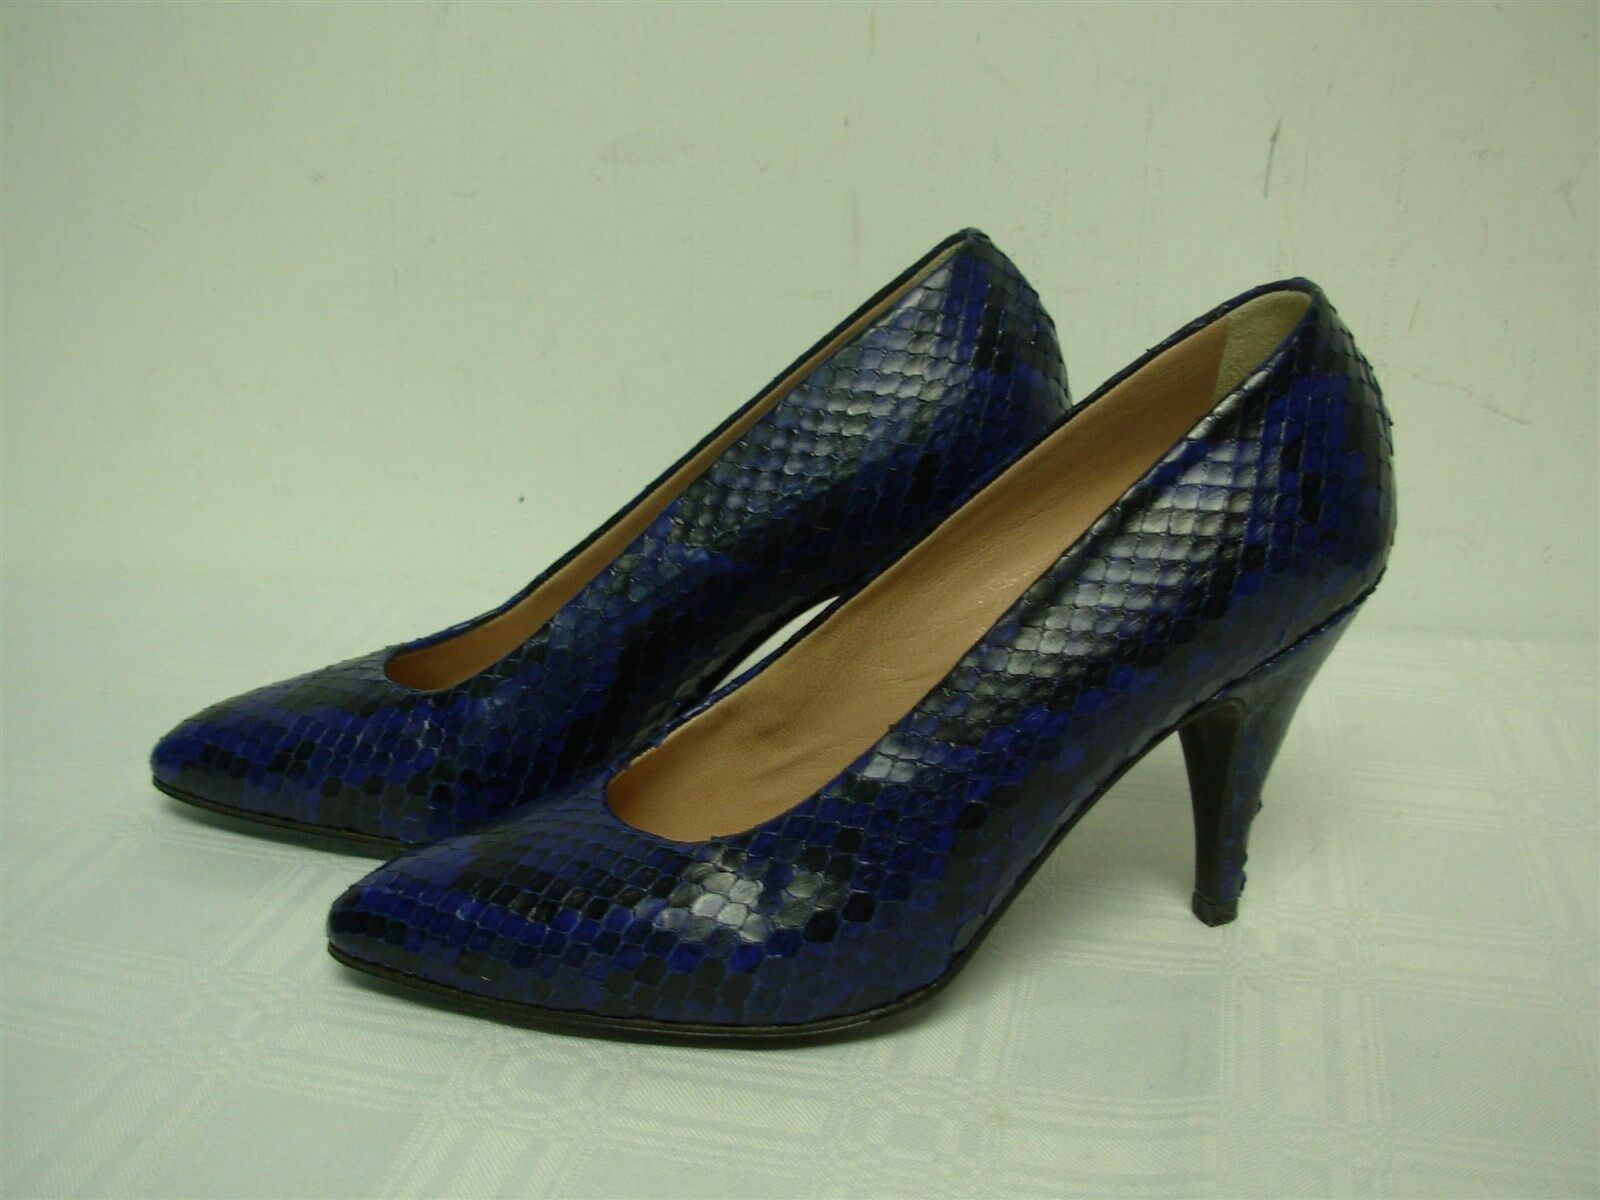 MAUD FRIZON PARIS MADE IN ITALY BLUE BLACK PYTHON SNAKE WOMENS PUMPS SHOES SZ 6